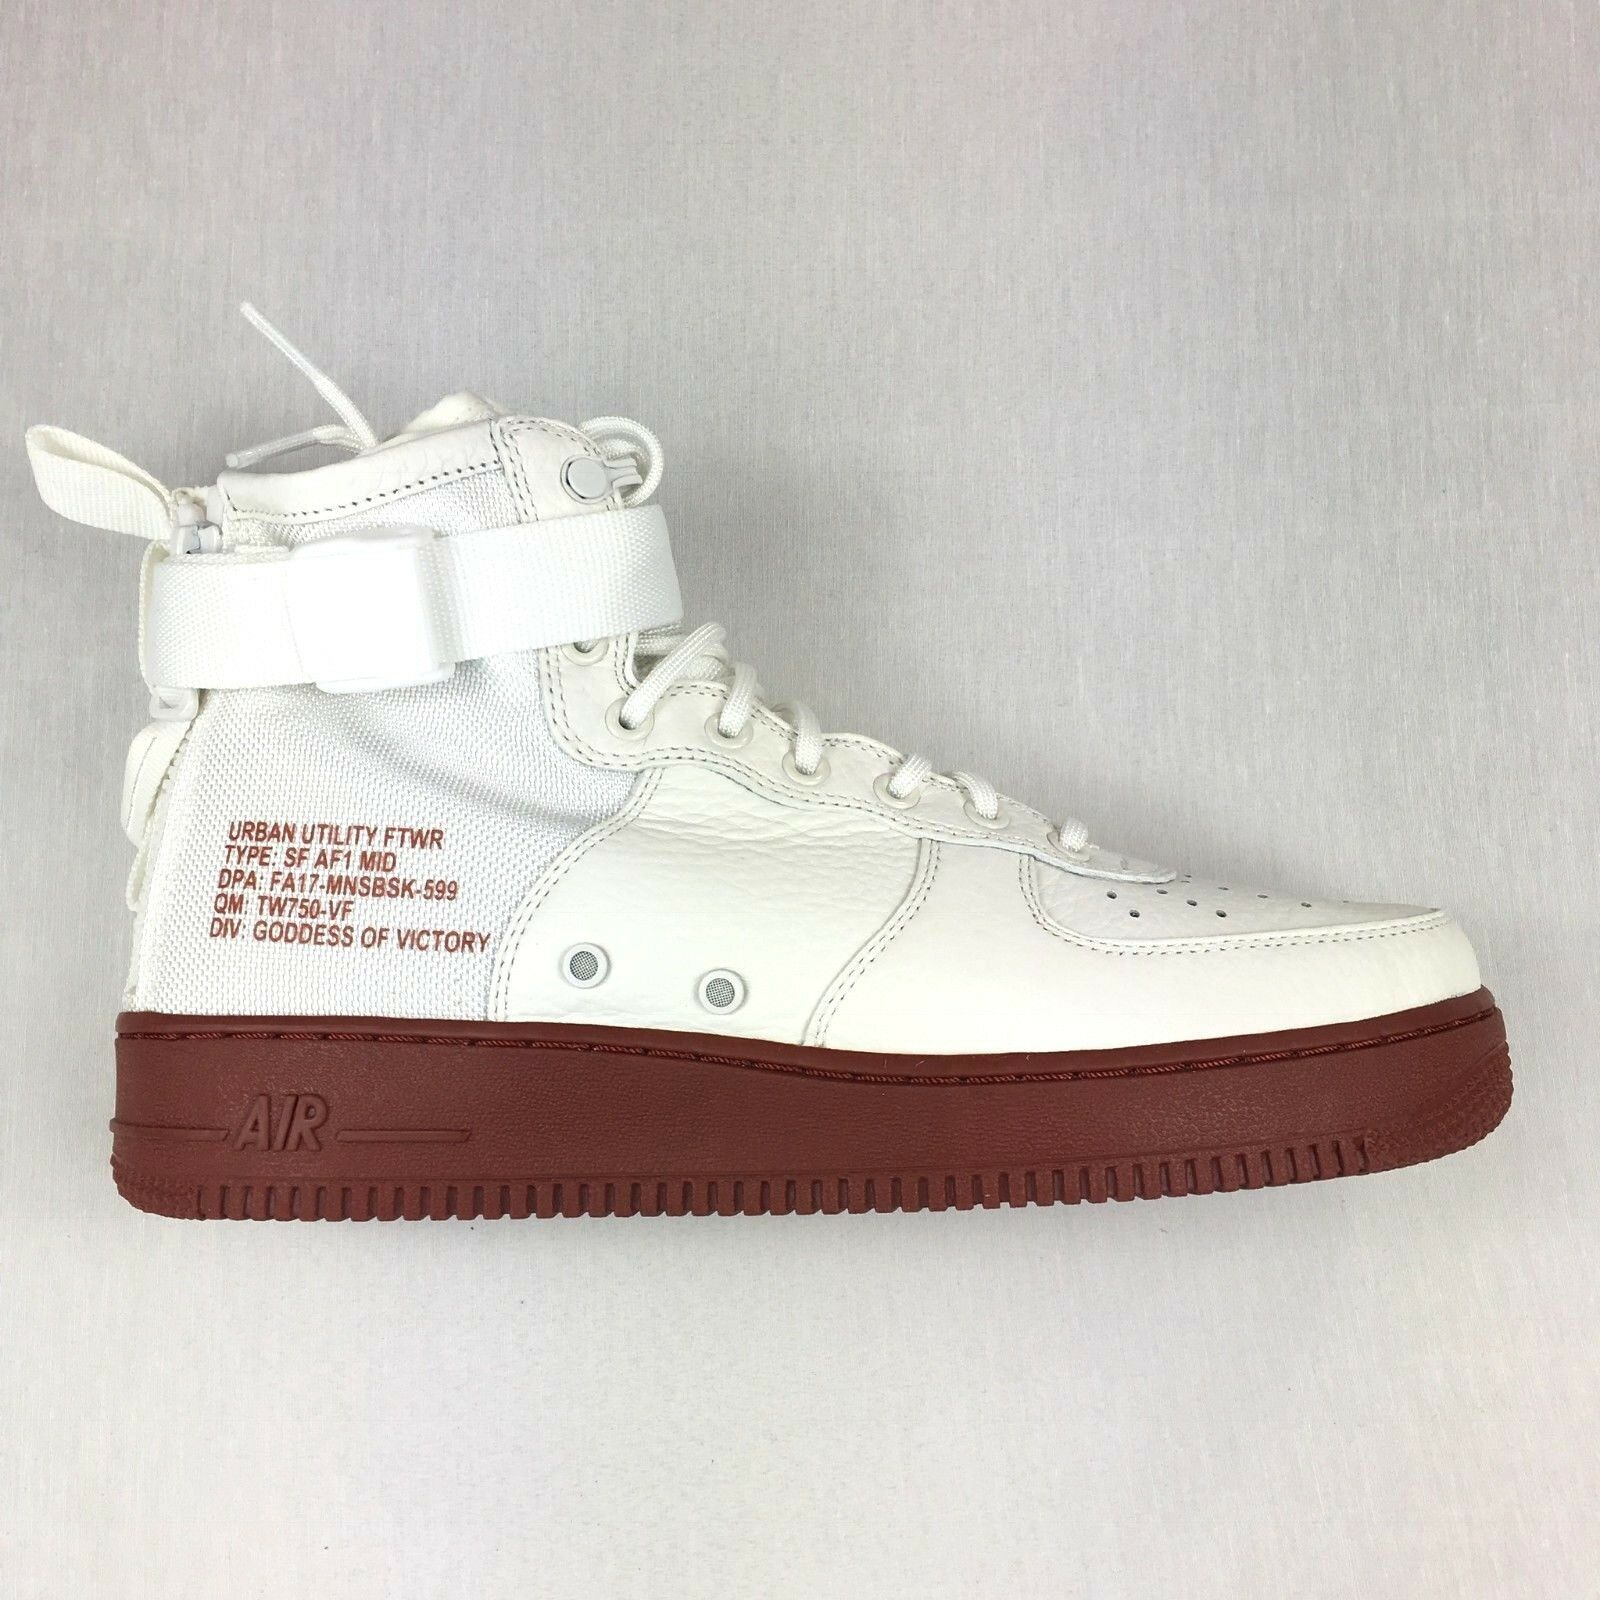 premium selection 83e35 93bd9 Nike SF AF1 Air Force 1 Special Forces Ivory Ivory Ivory Mars Stone Men s  shoes 9297ed